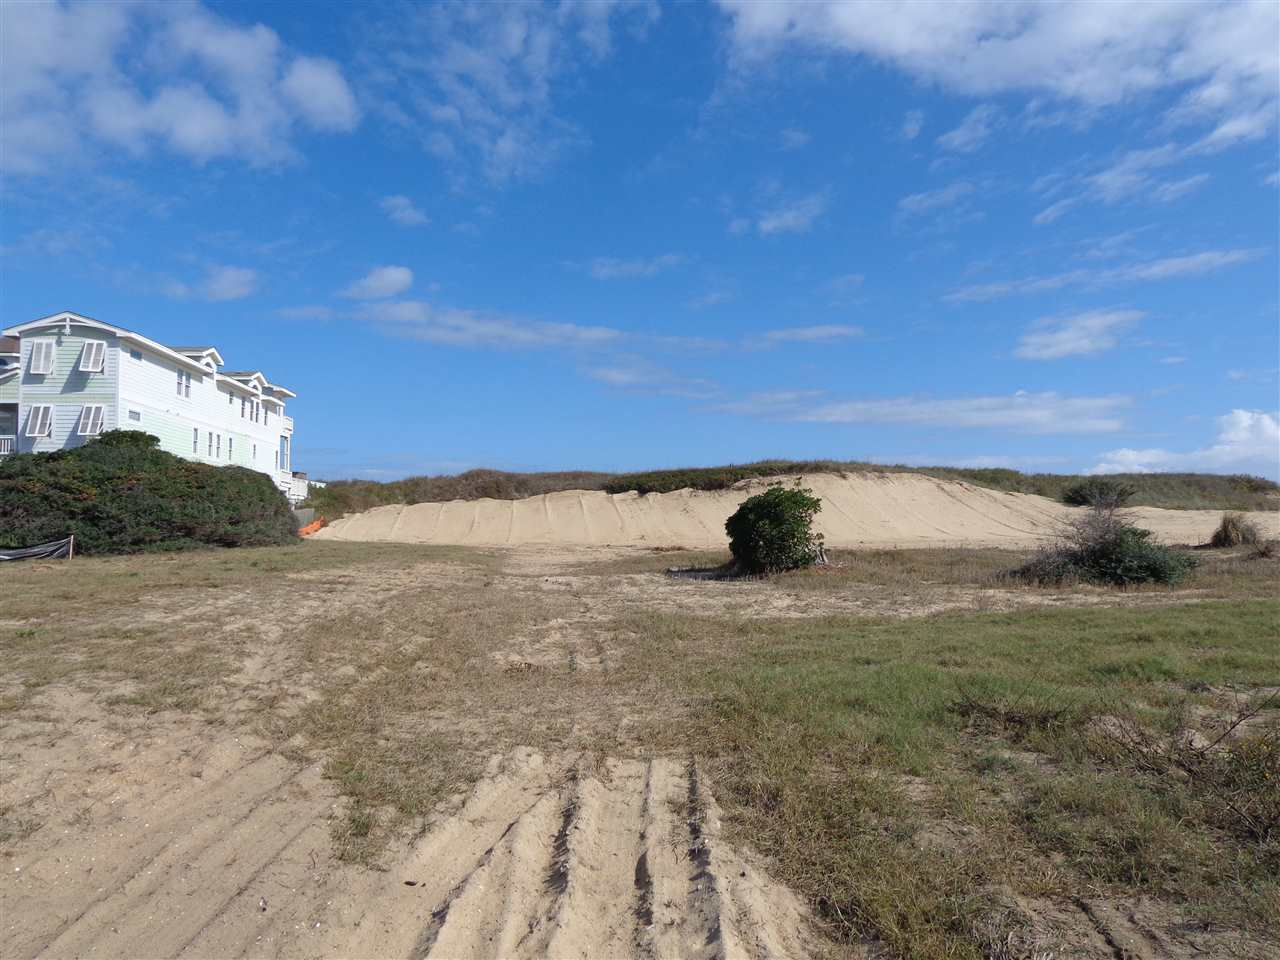 2607 Virginia Dare Trail, Nags Head, NC 27959, ,Lots/land,For sale,Virginia Dare Trail,94258